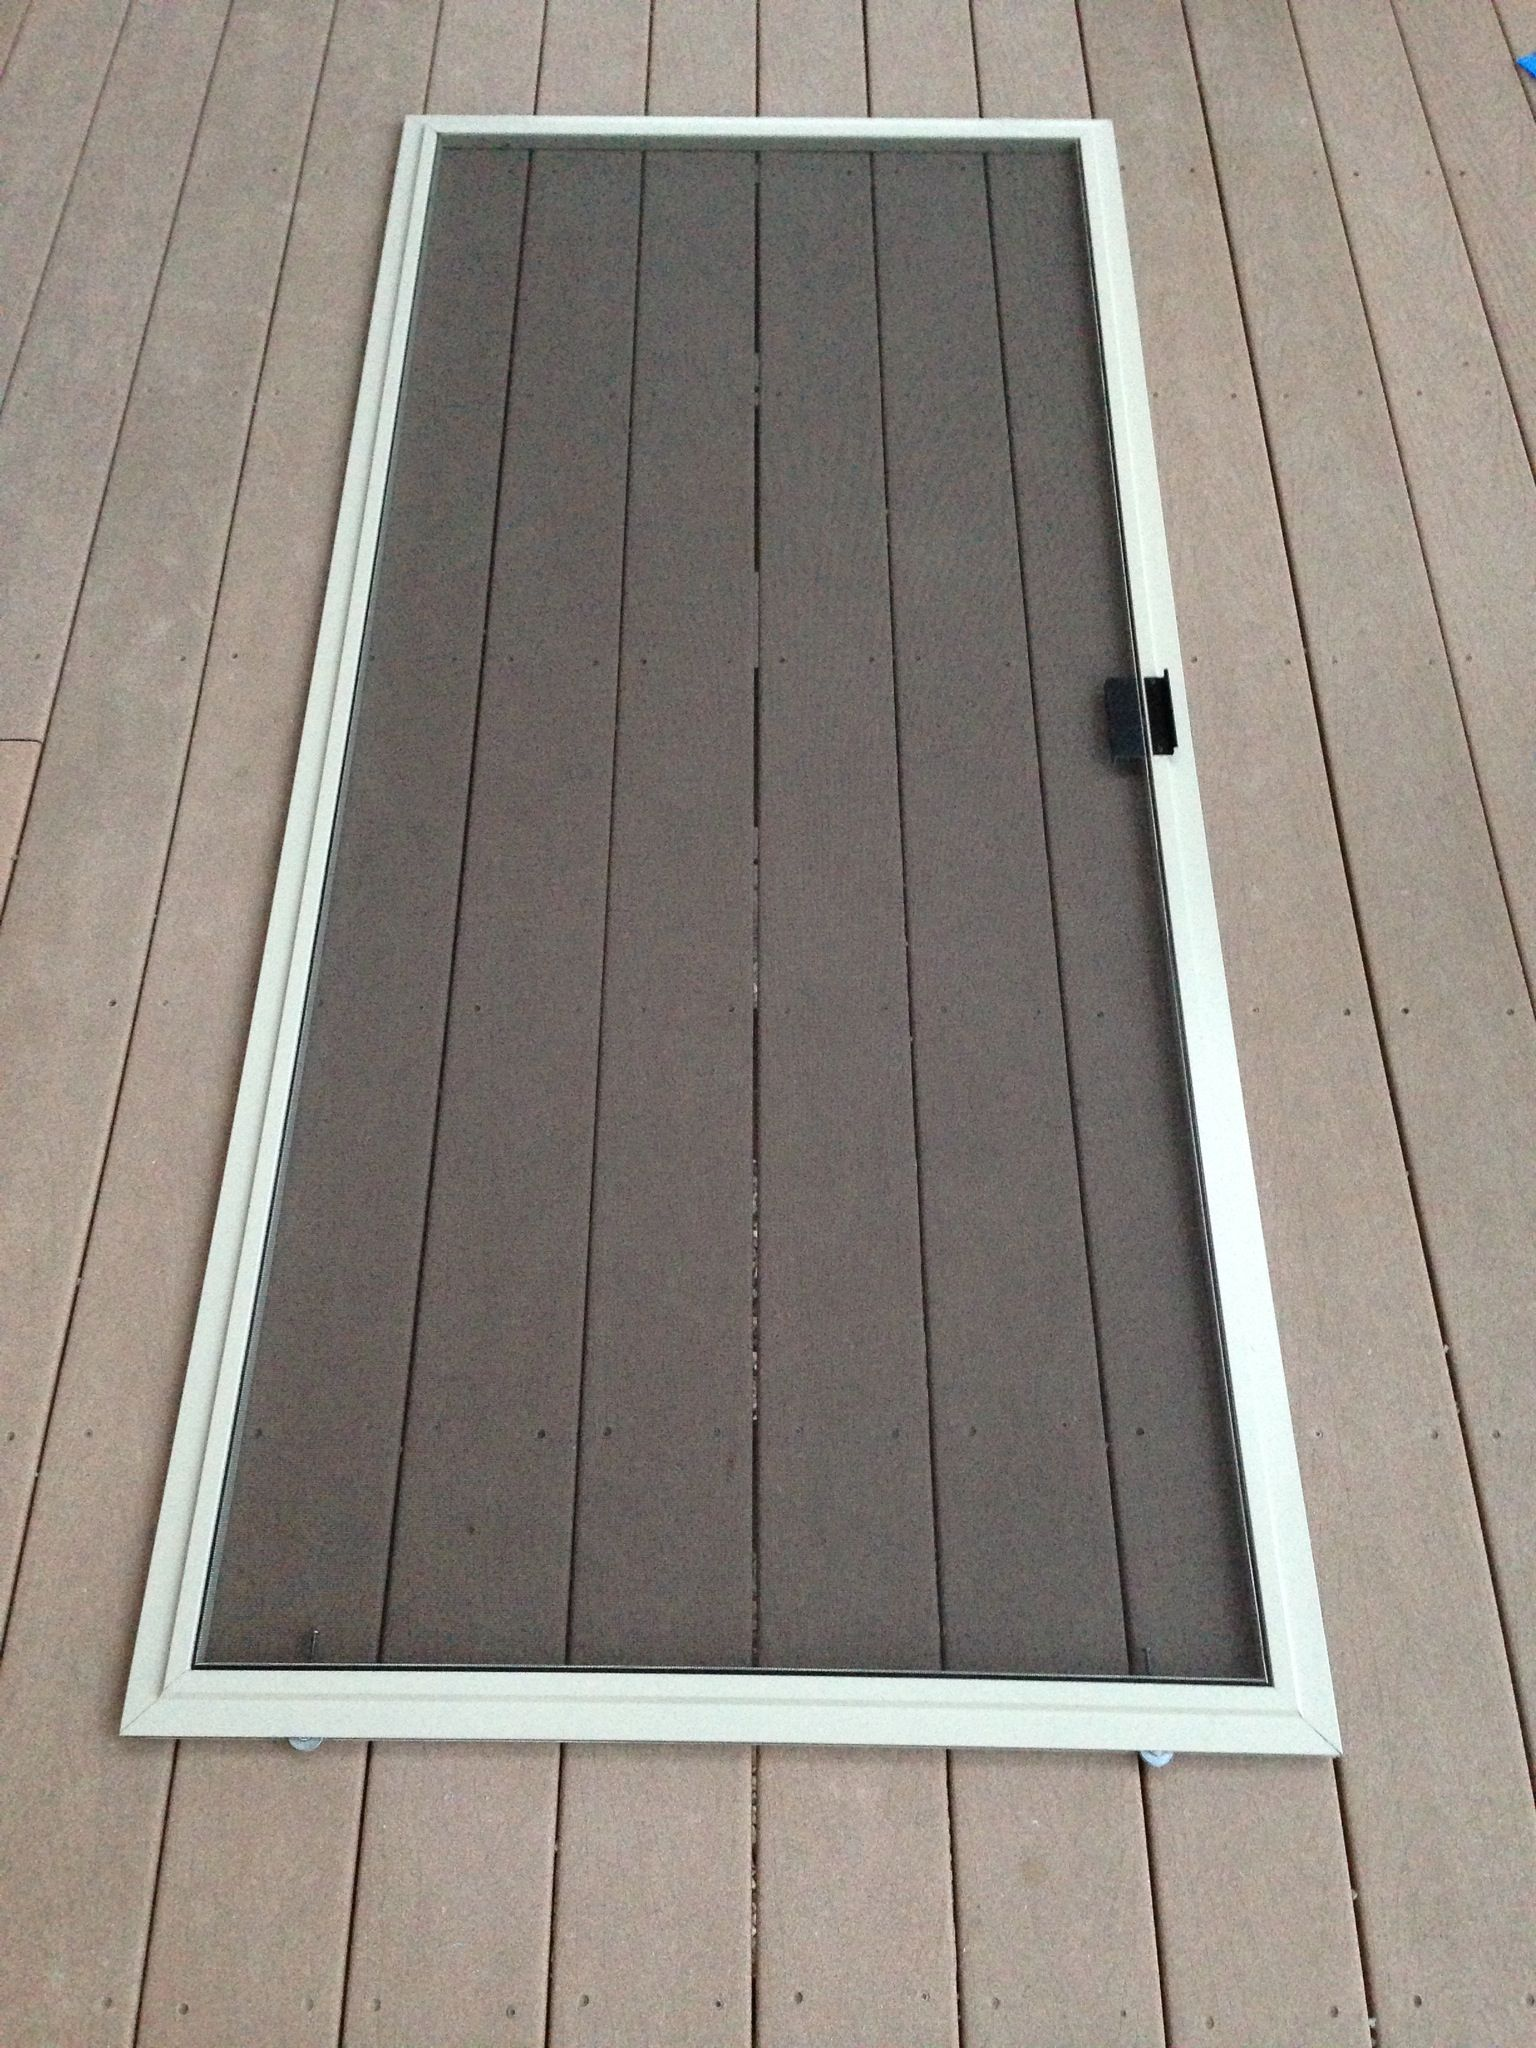 How To Re Screen A Window Or Sliding Glass Door Screen